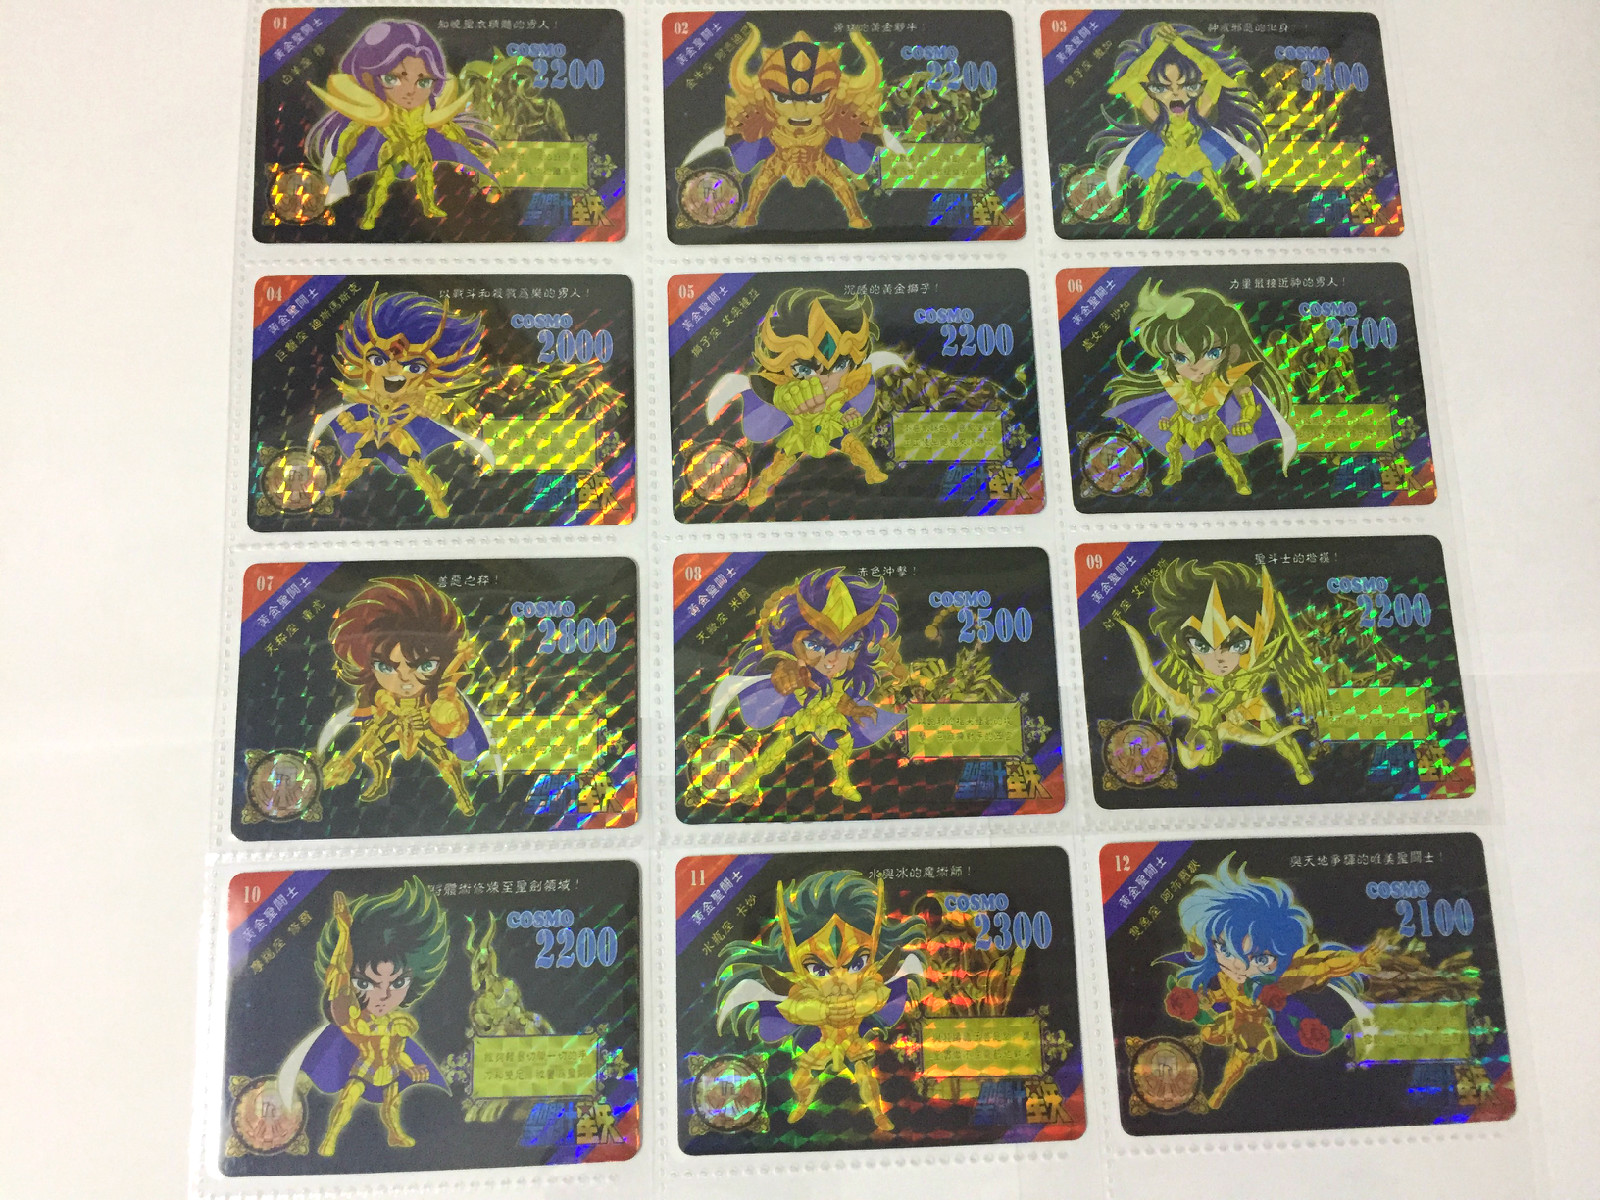 12pcs/set Saint Seiya Q Version Golden Zodiac Toys Hobbies Hobby Collectibles Game Collection Anime Cards